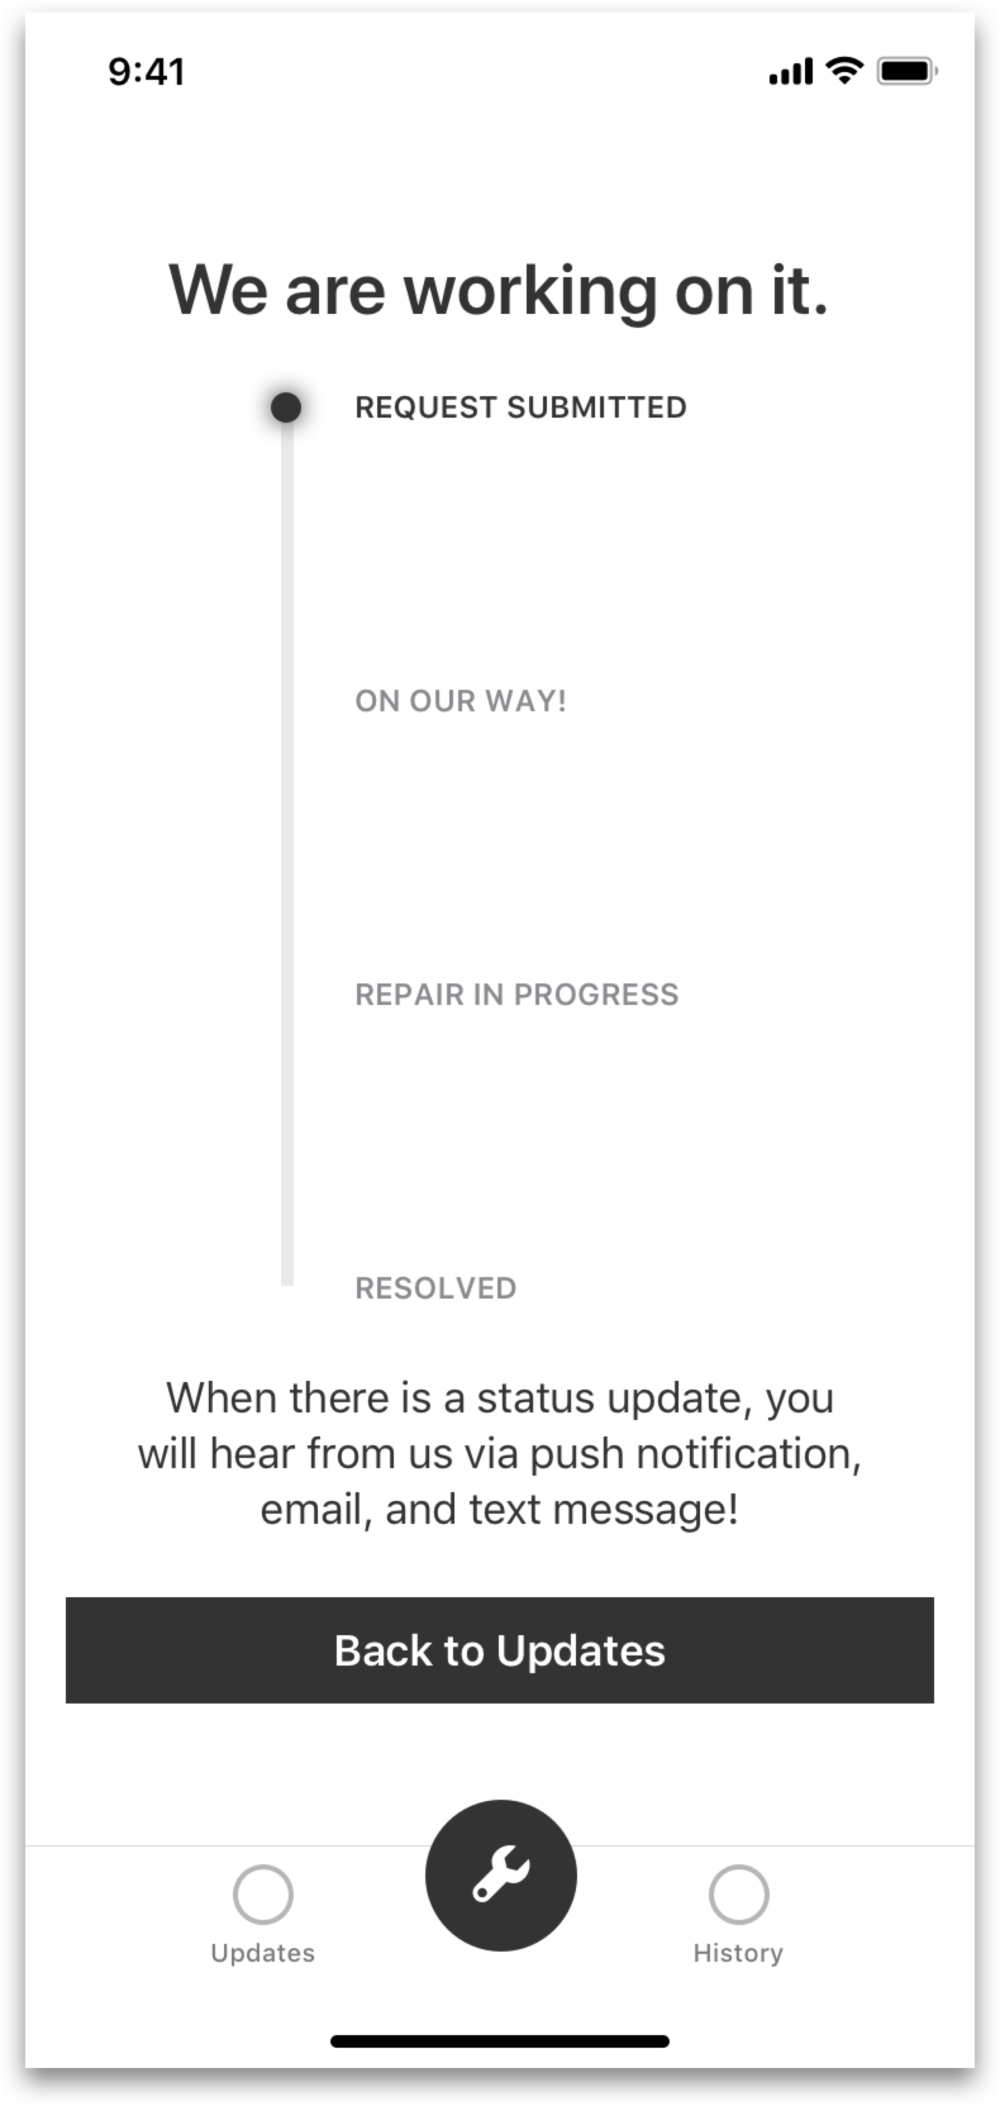 I chose this alternative design because as I thought that showing more visuals of the request progress (and less wordy) would be less mentally taxing on the user. - Both designs would use the same confirmation screen.